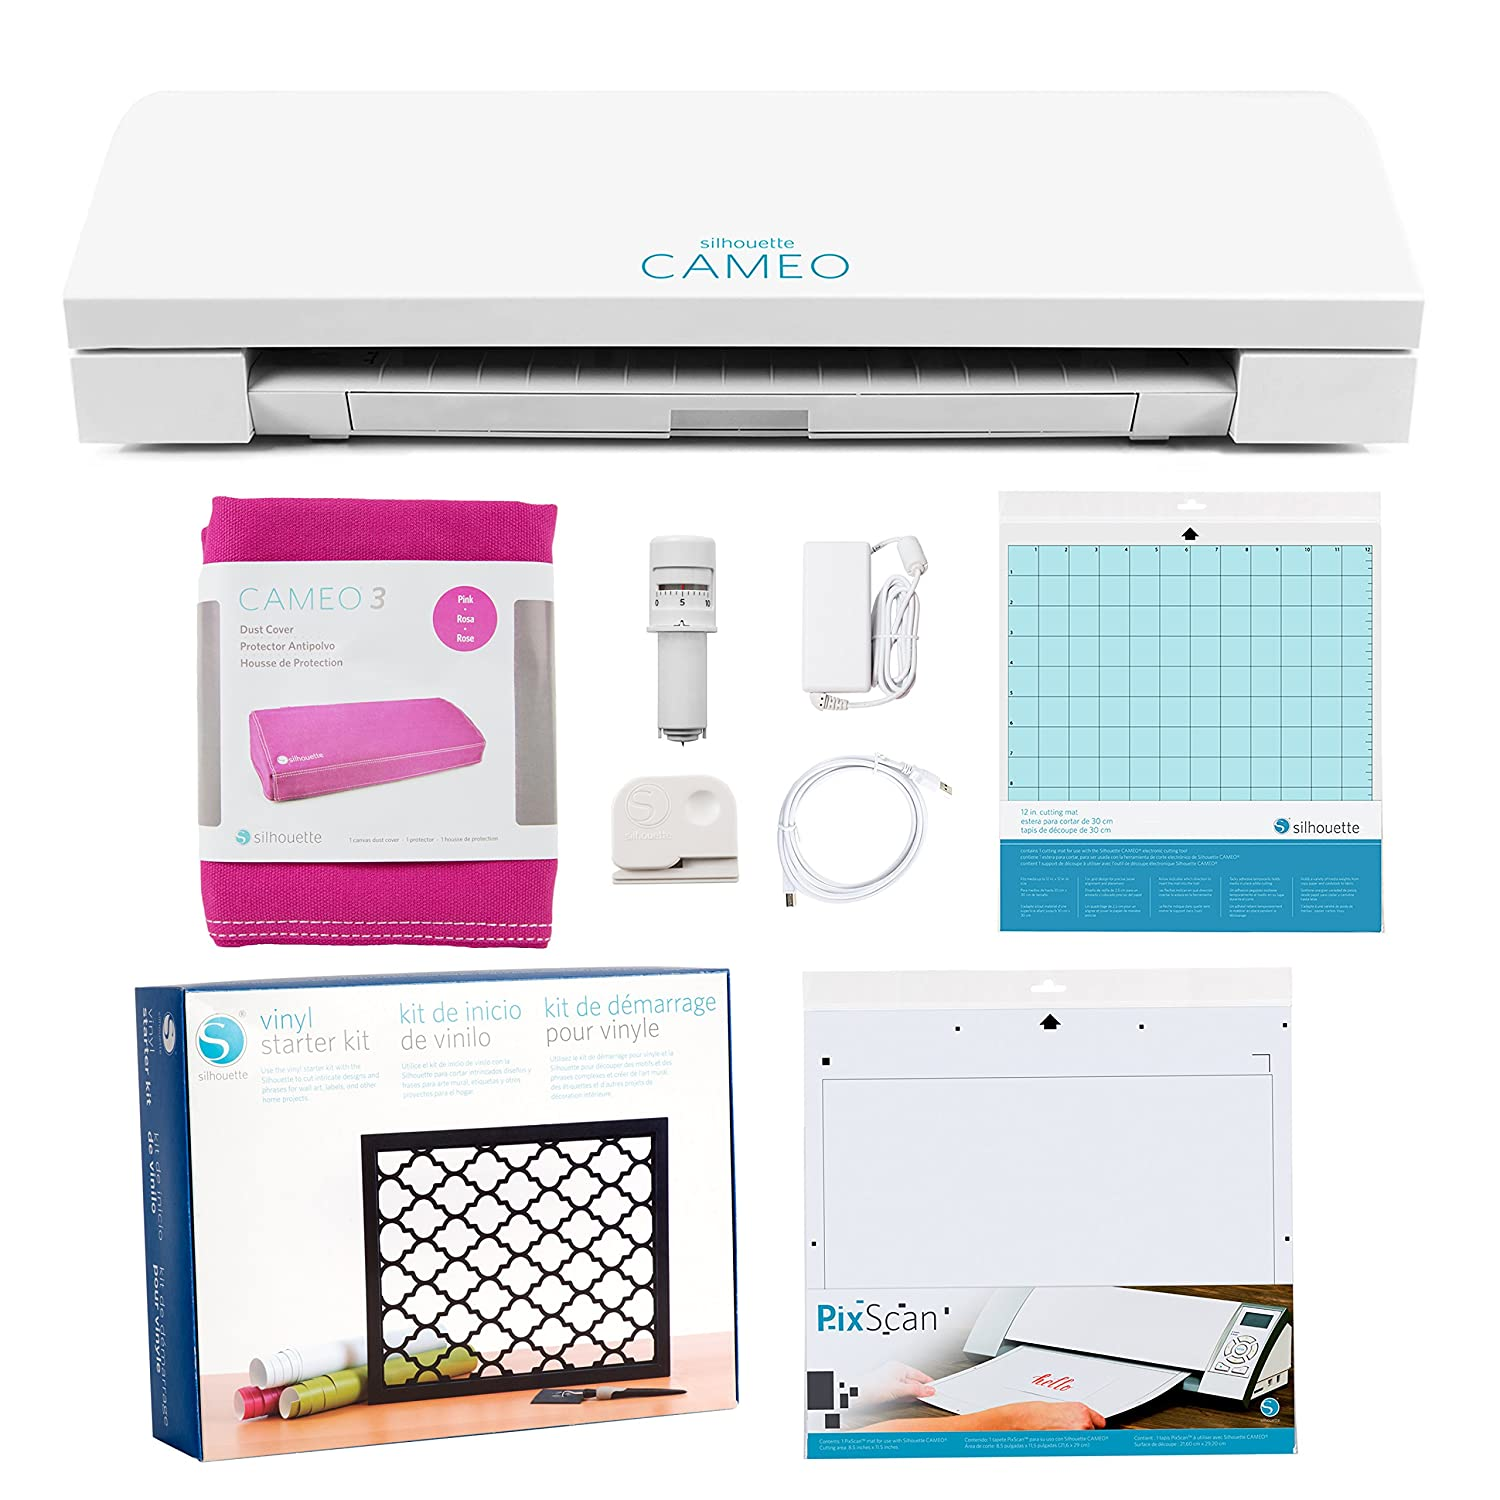 Silhouette Cameo 3 Deluxe Starter Bundle with Oracal 651 Sheets, Transfer Paper, Pixscan Mat, Guide, Class, and More! Silhouette America 4336979027